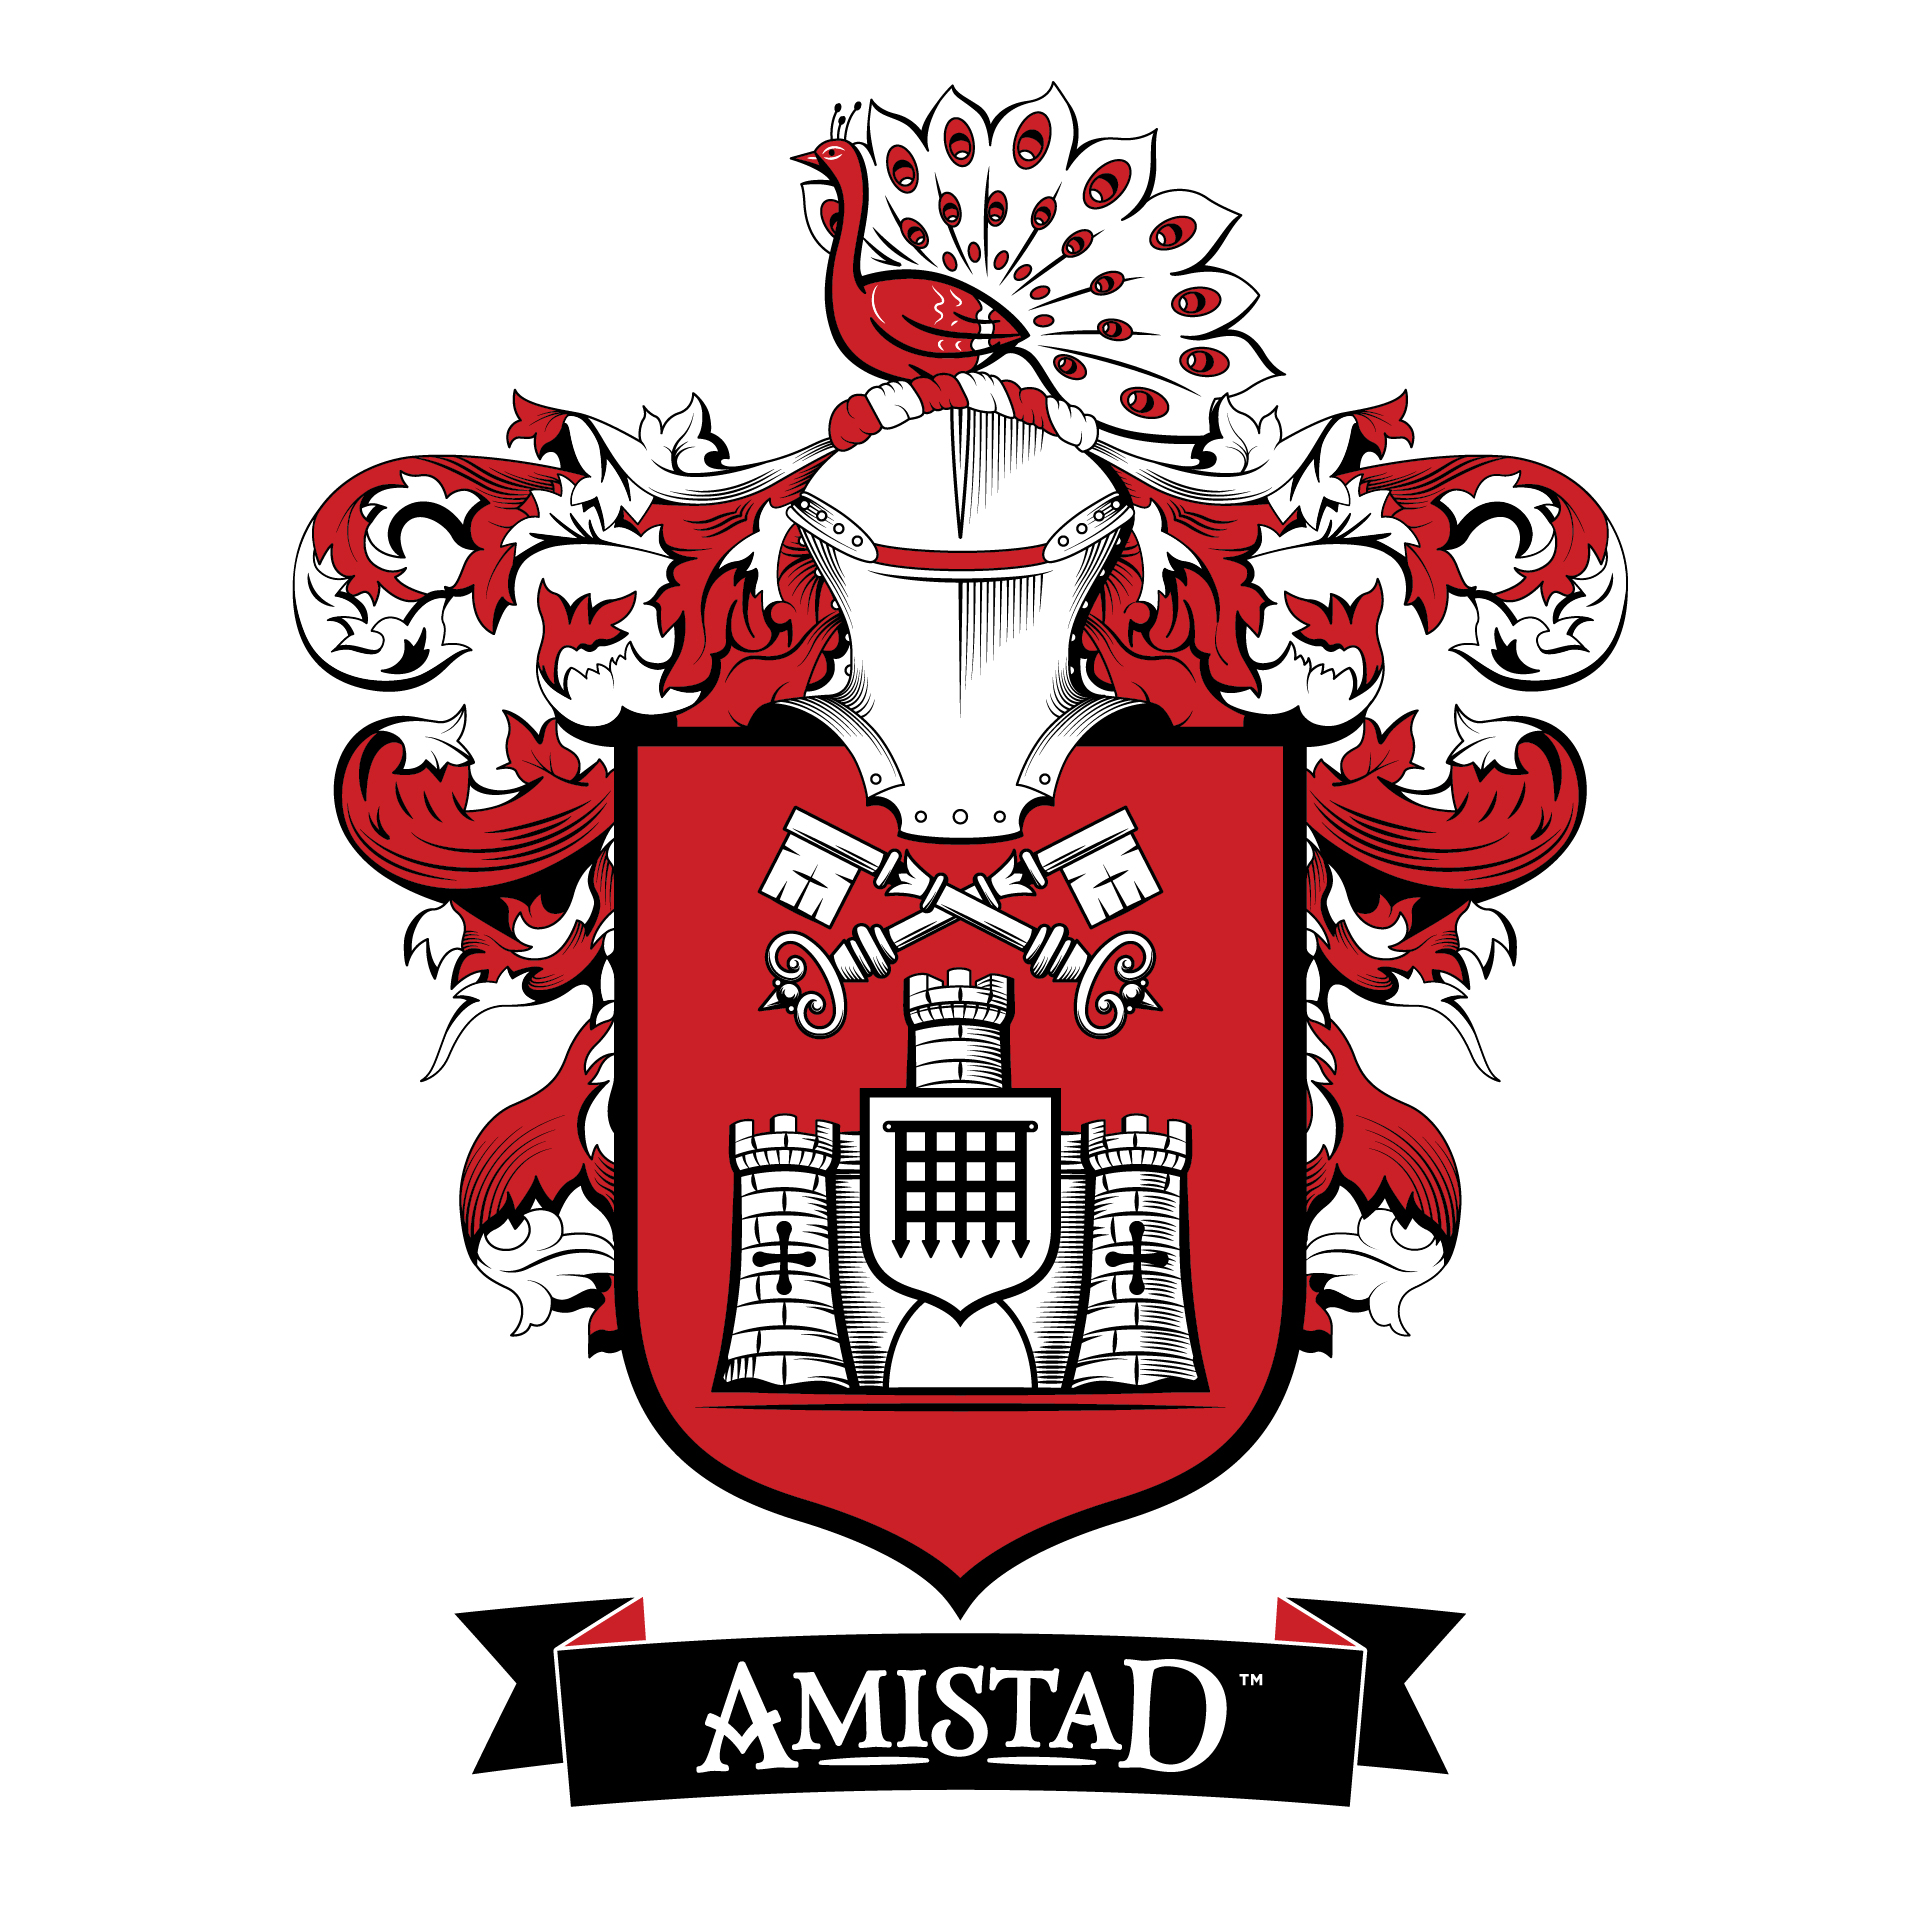 """Amistad - Amistad is the House that originates from Spain. A group of individuals that are quiet but powerful, they are known most for their kindness of heart. This is why, in the language of their ancestry, their name means """"friendship."""""""